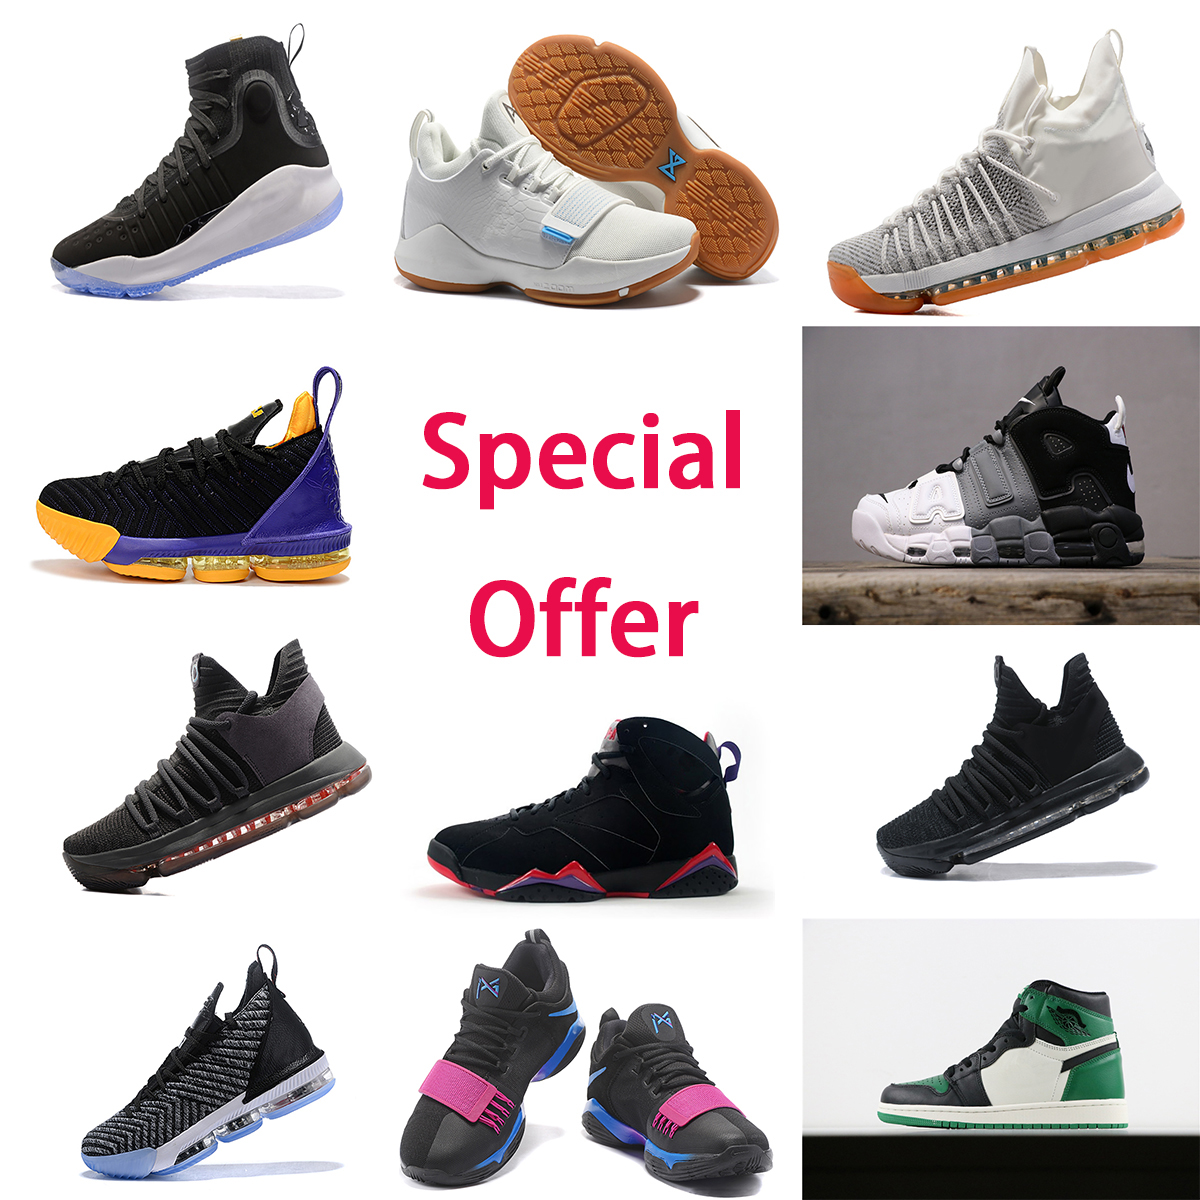 Cheap specials Inventory handling Hot sale basketball shoes PG 1 KD basketball shoes sports shoes free shipping Some sizes are available